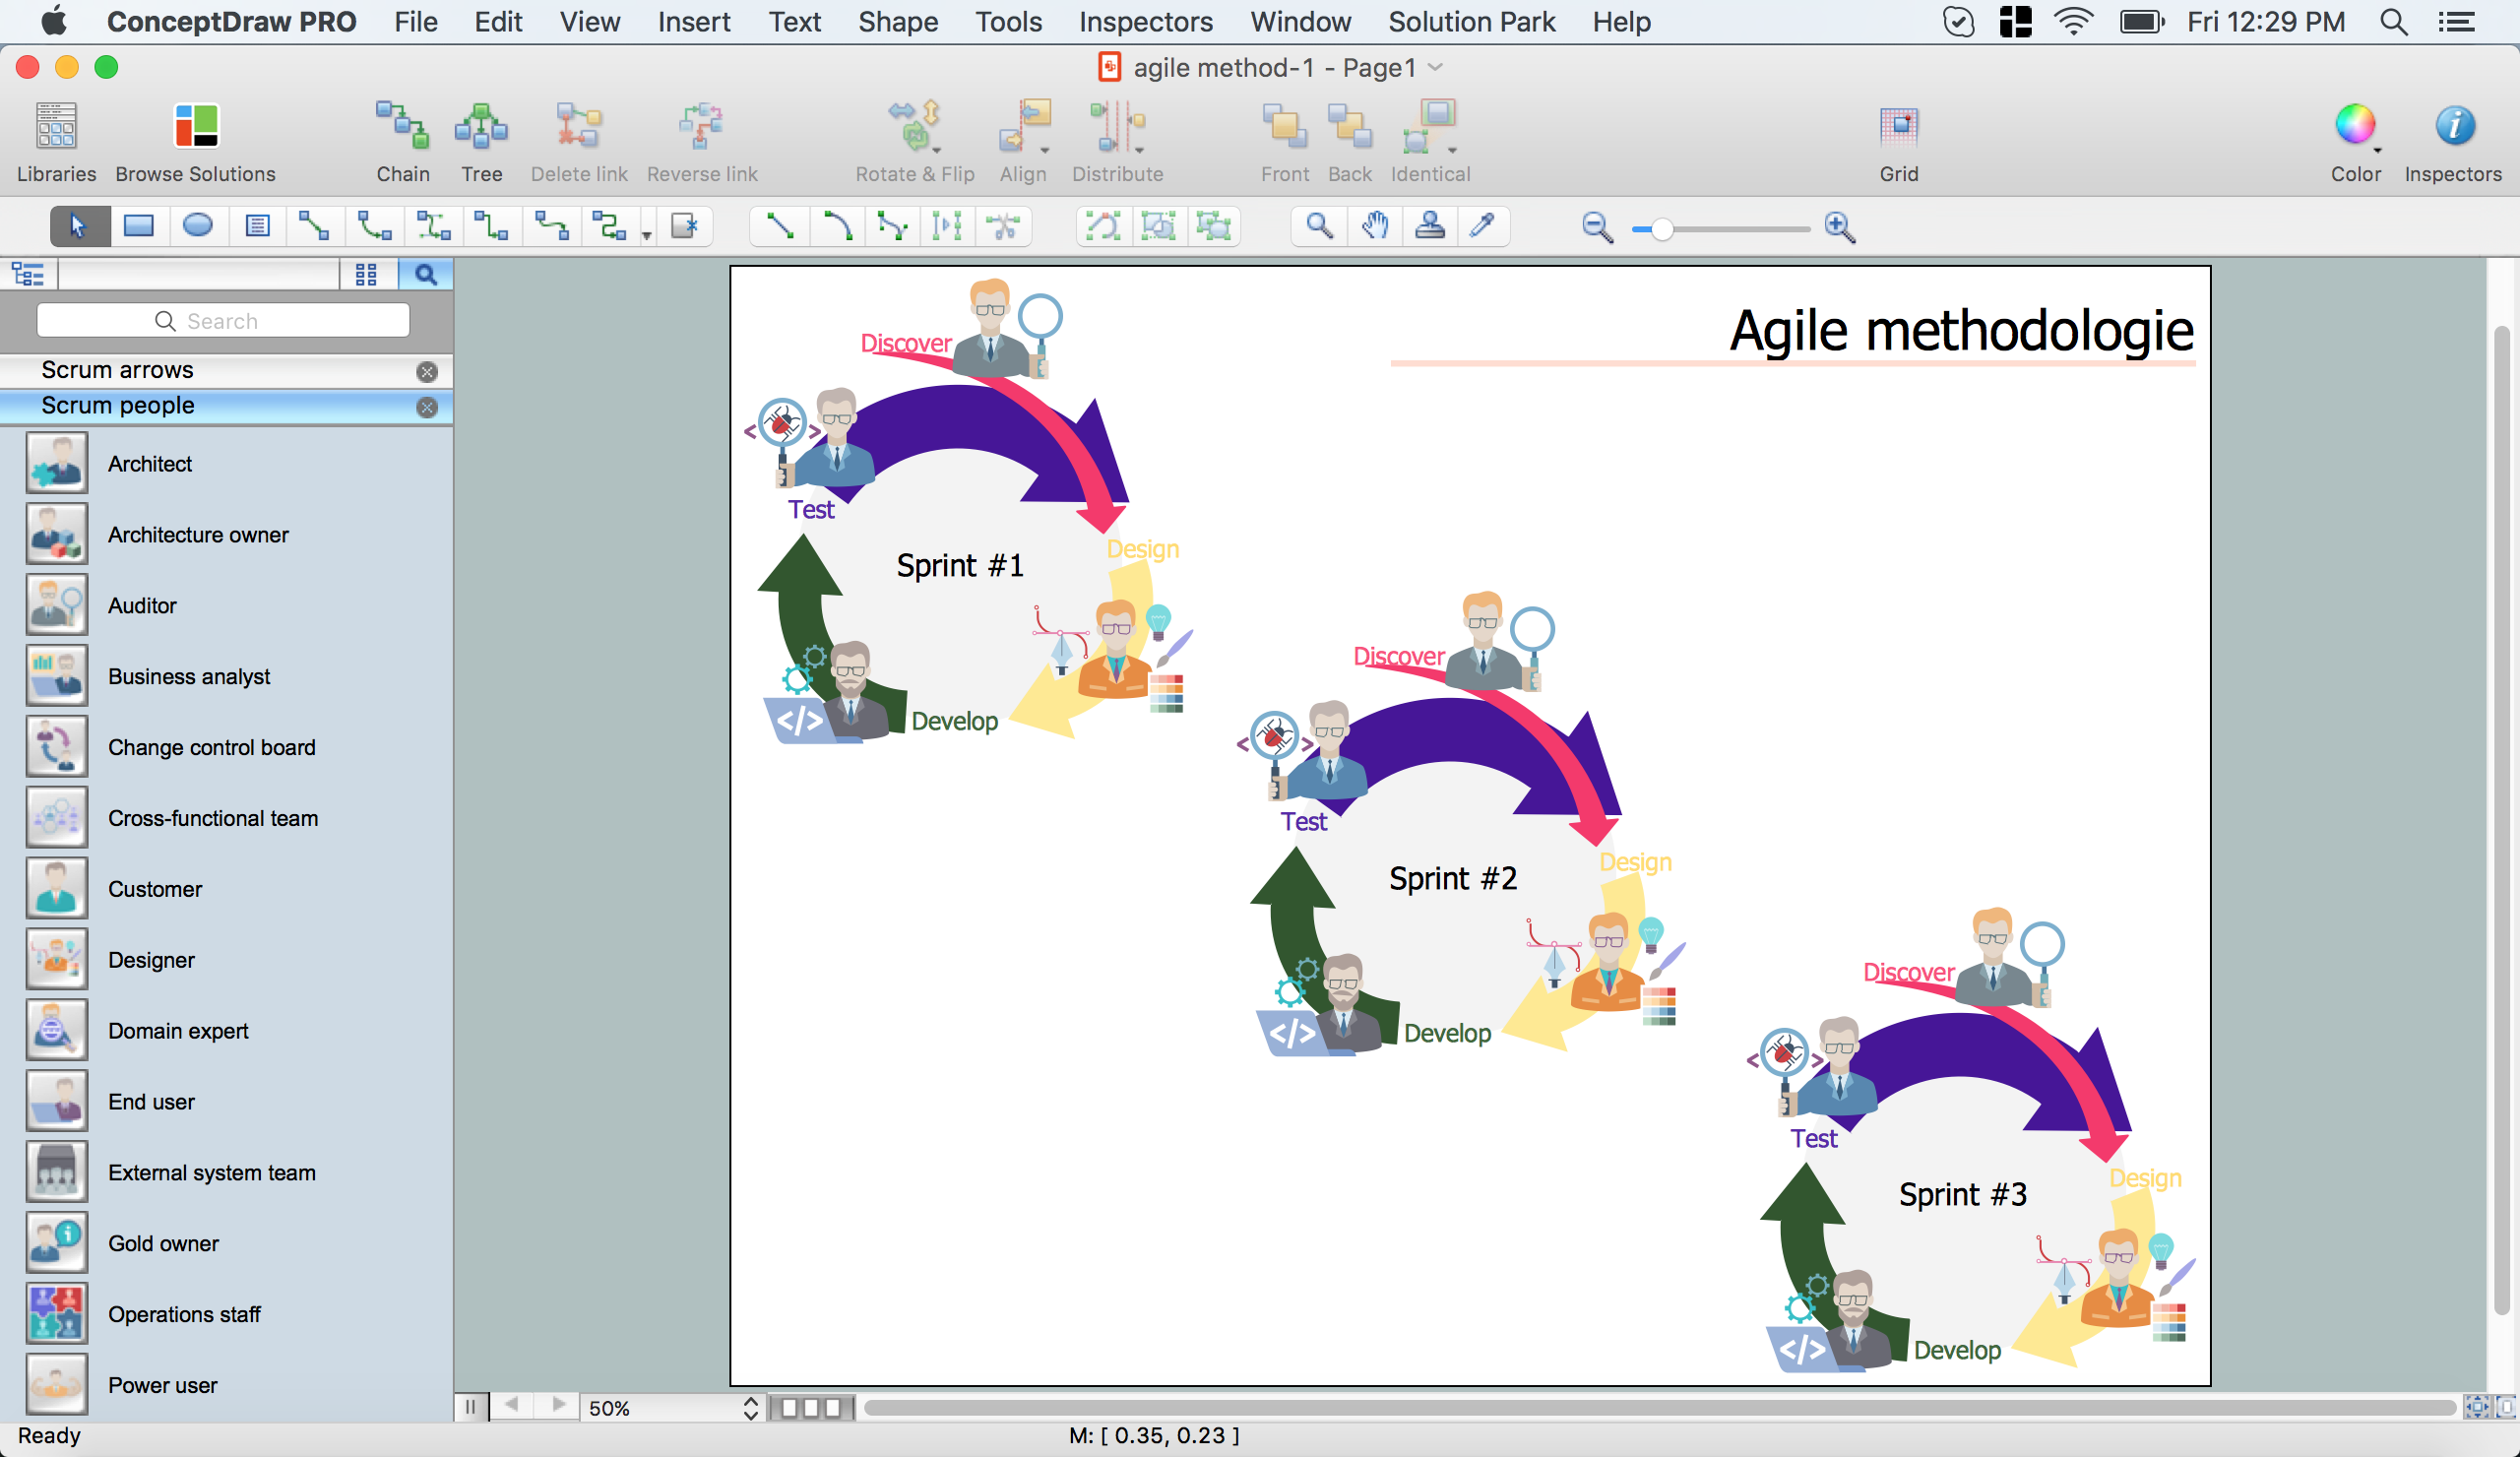 Agile Methodology in ConceptDraw PRO